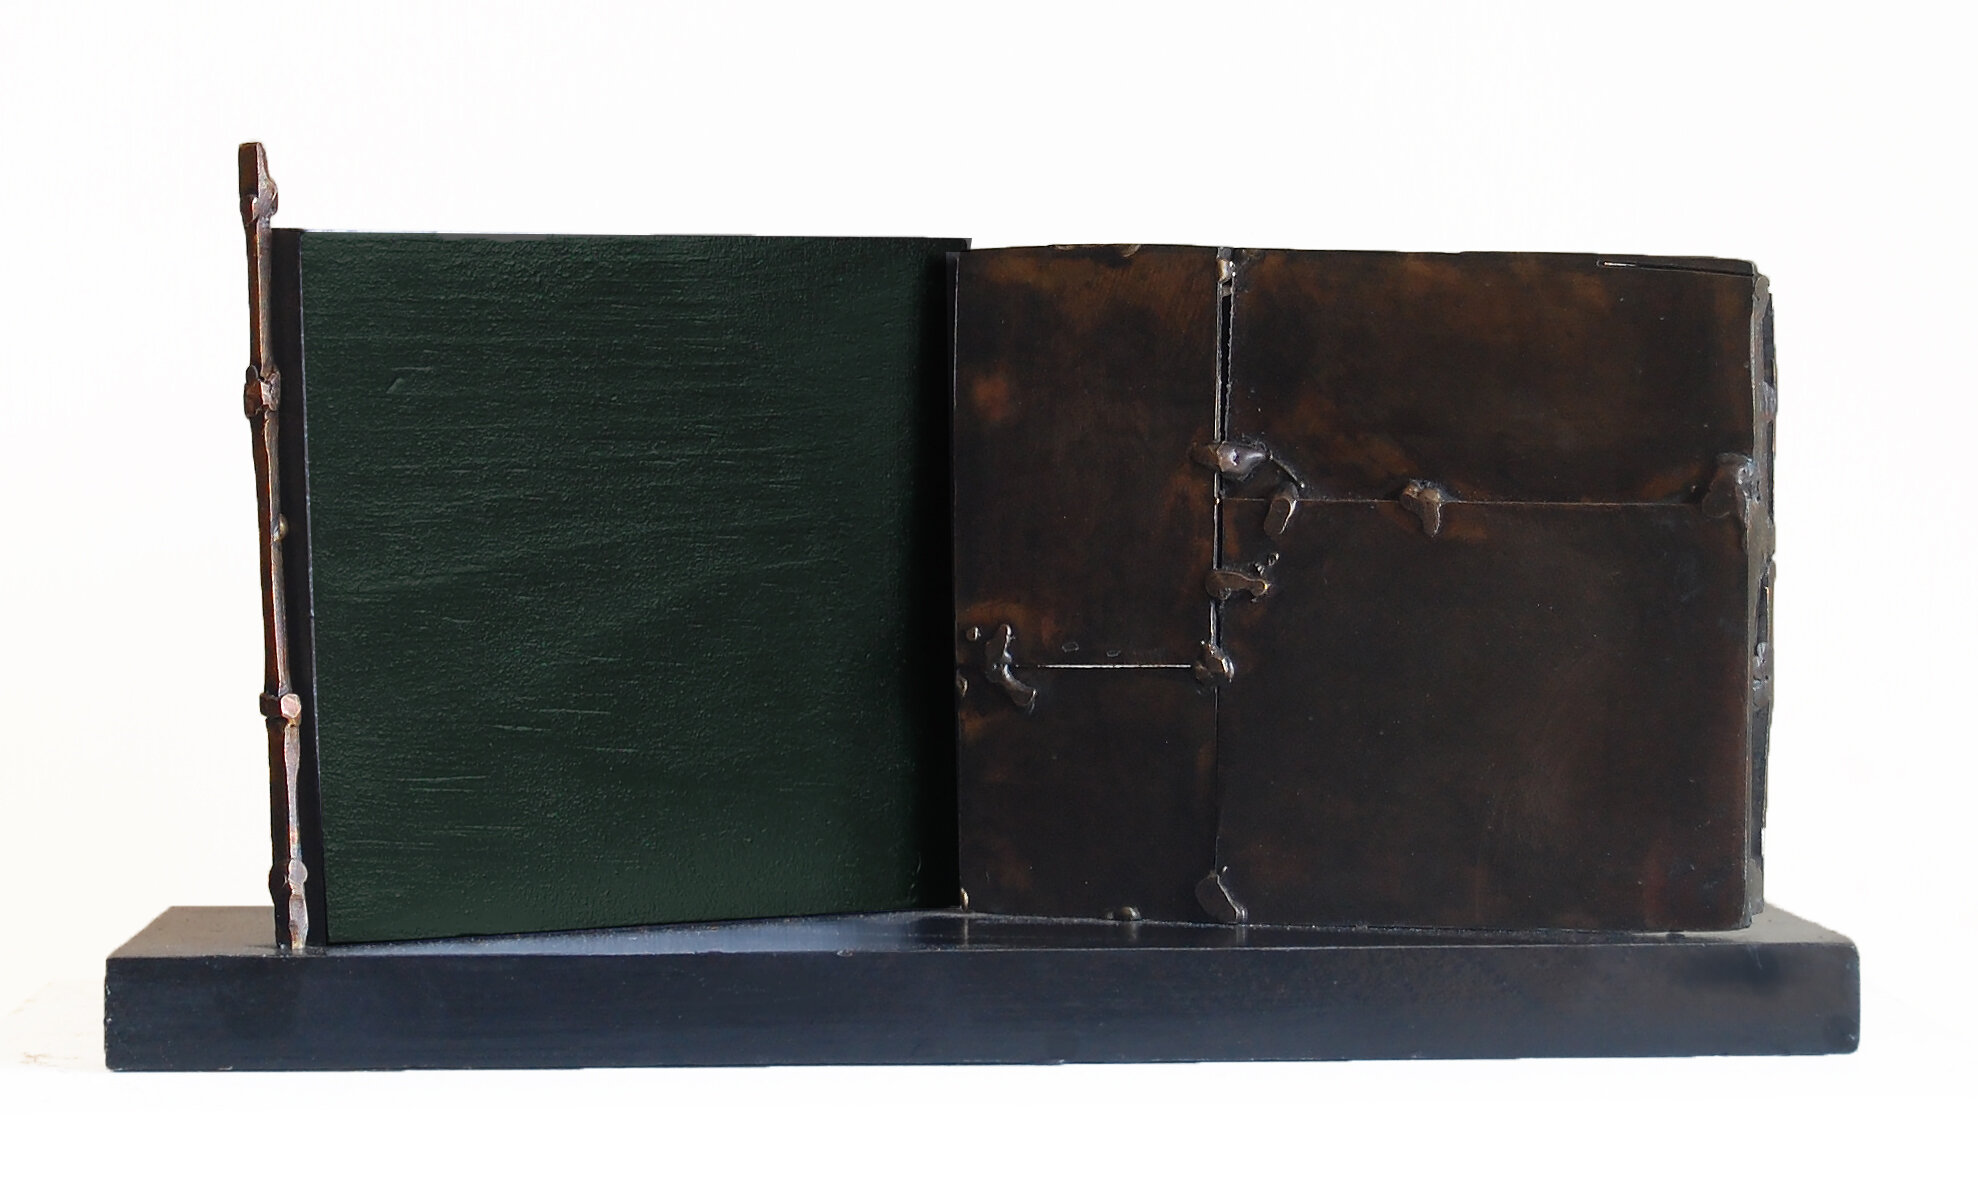 Second Story, 2019,  bronze, wood, 13 in, $3500